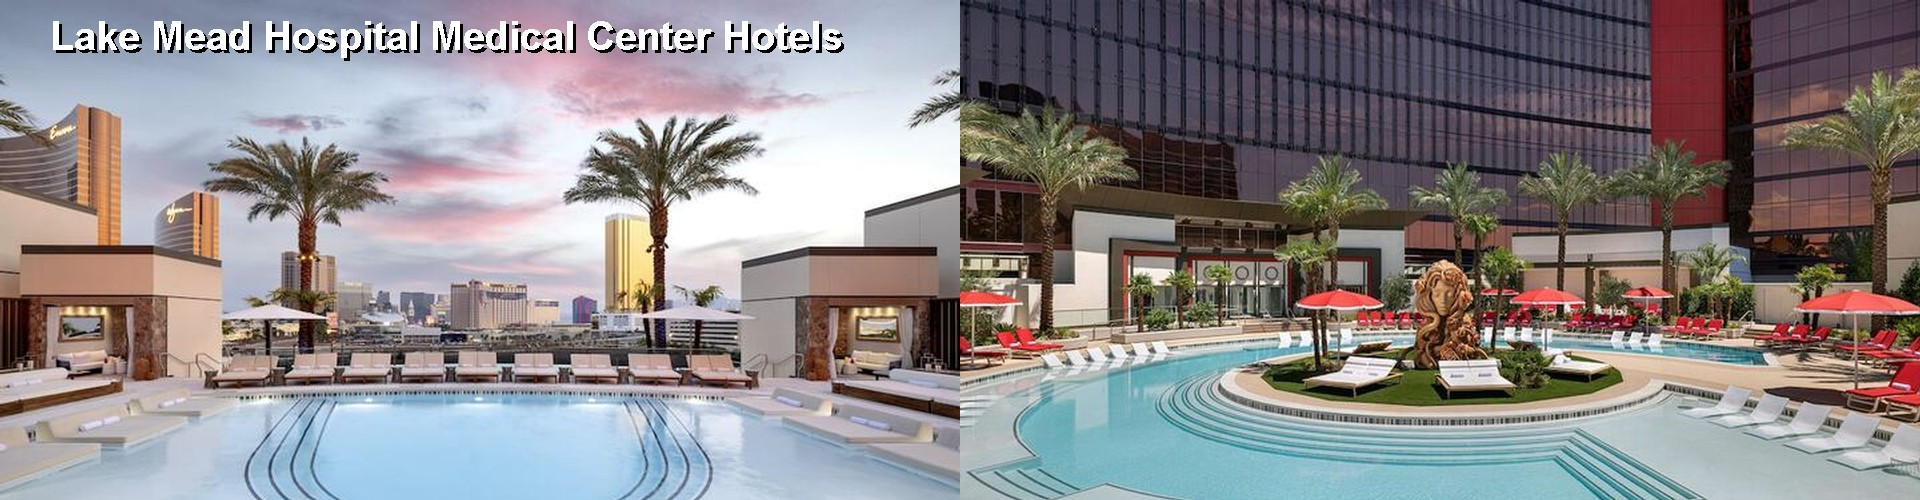 5 Best Hotels near Lake Mead Hospital Medical Center